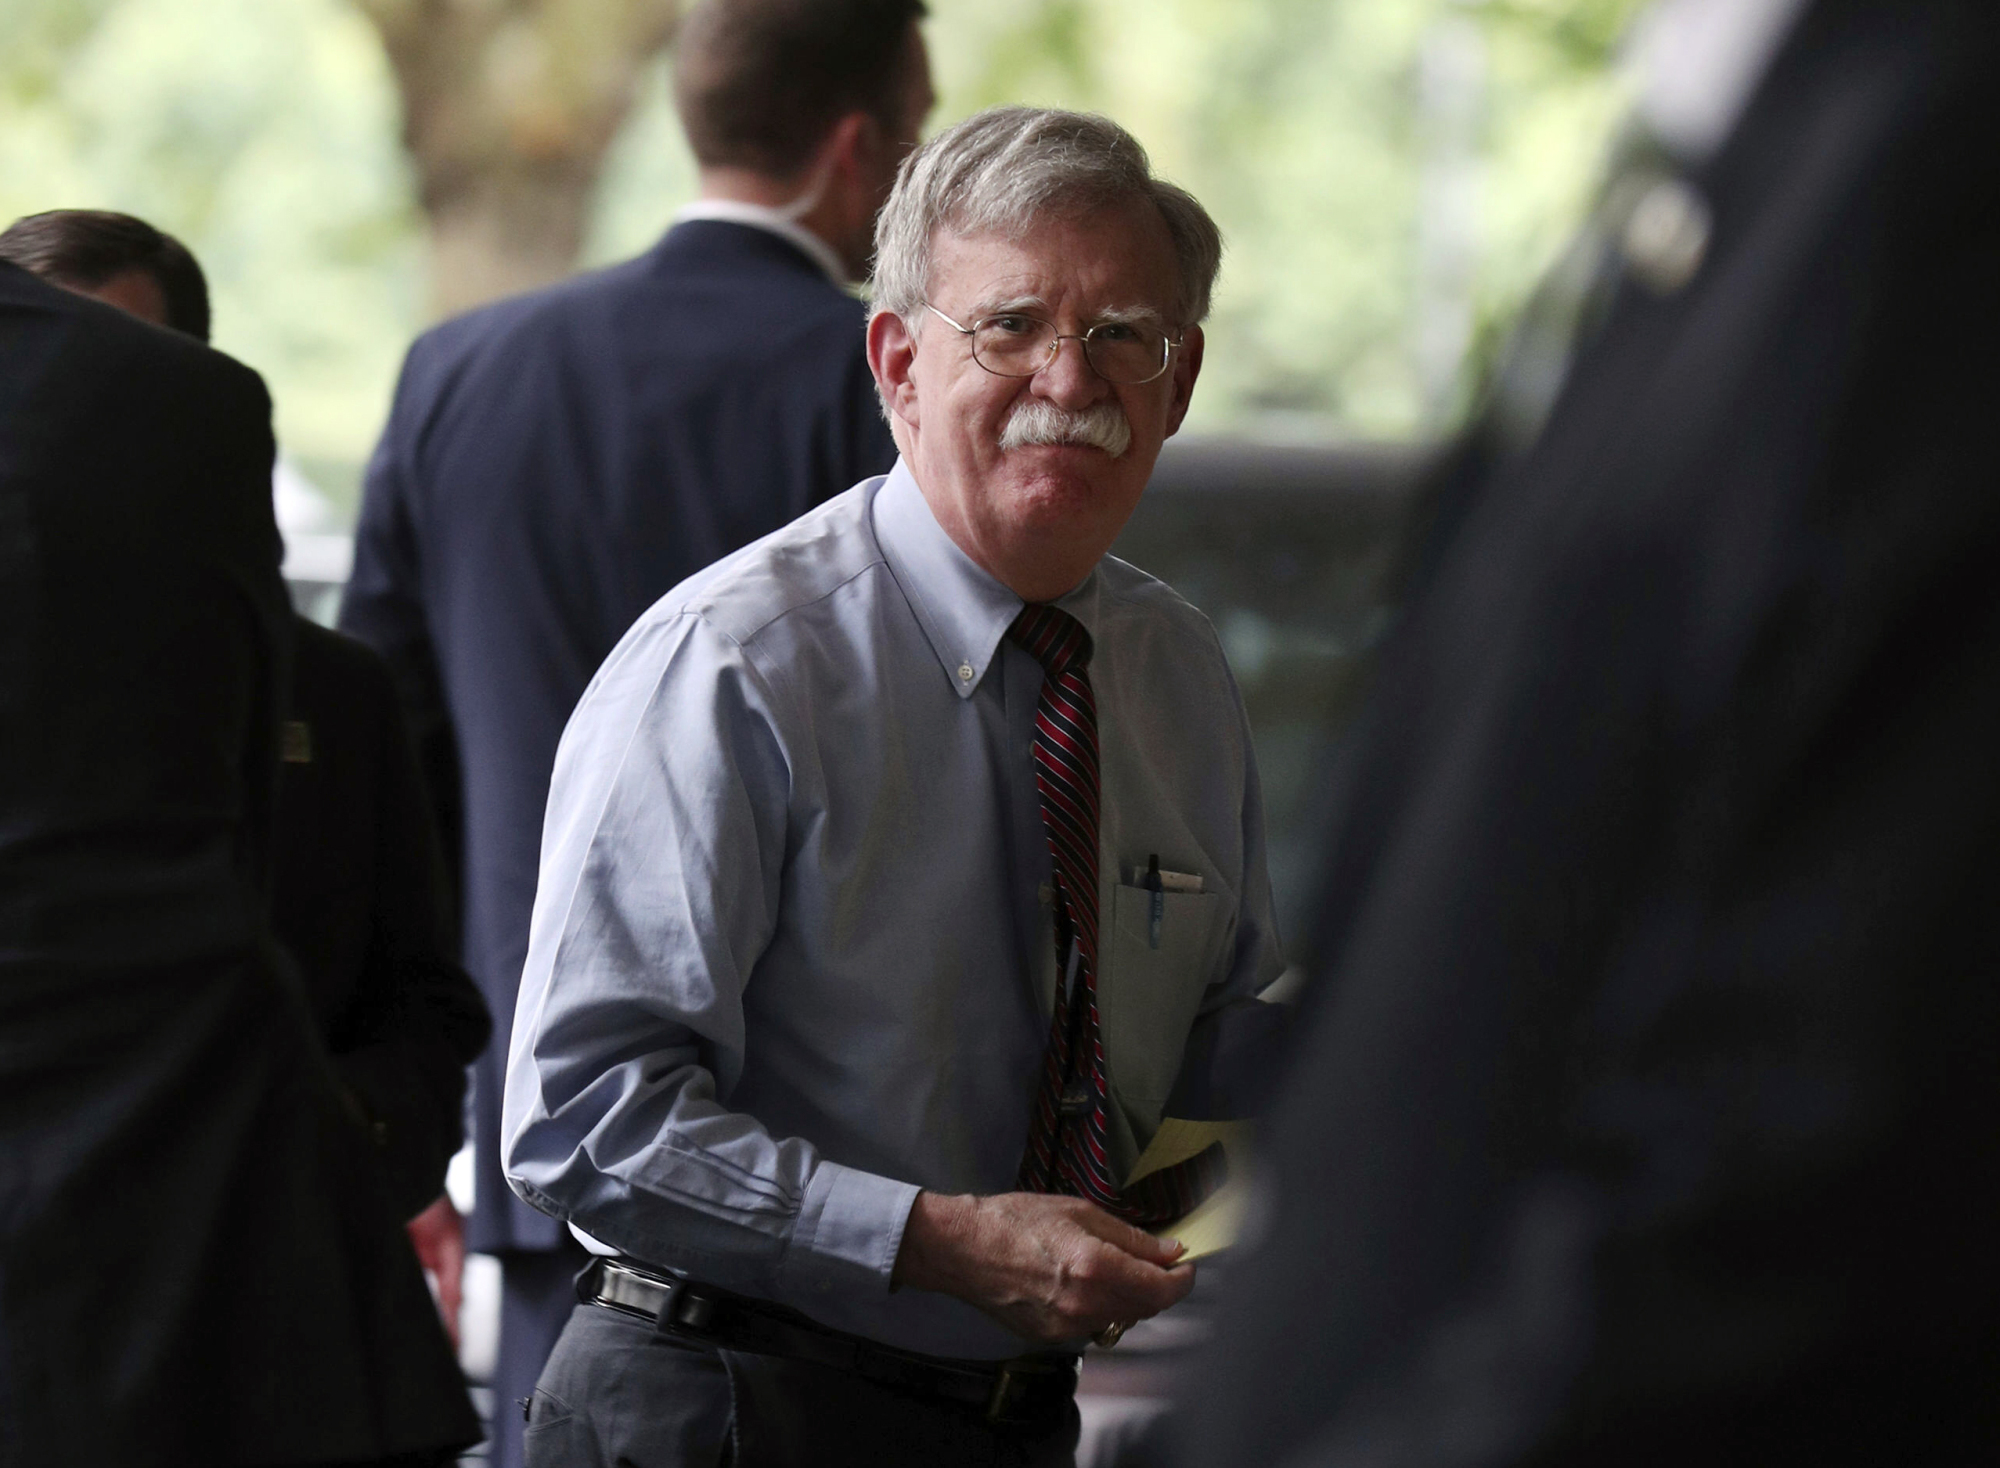 U.S. National Security Adviser John Bolton arrives to speak to members of the media at a hotel in central London Monday. U.S. President Donald Trump's national security adviser says the United States is ready to negotiate a post-Brexit trade deal with the U.K. 'in pieces' to help speed the process. Bolton met with British Prime Minister Boris Johnson on Monday, and their discussion covered Brexit, Hong Kong, Iran and other issues.   YUI MOK / PA / VIA AP